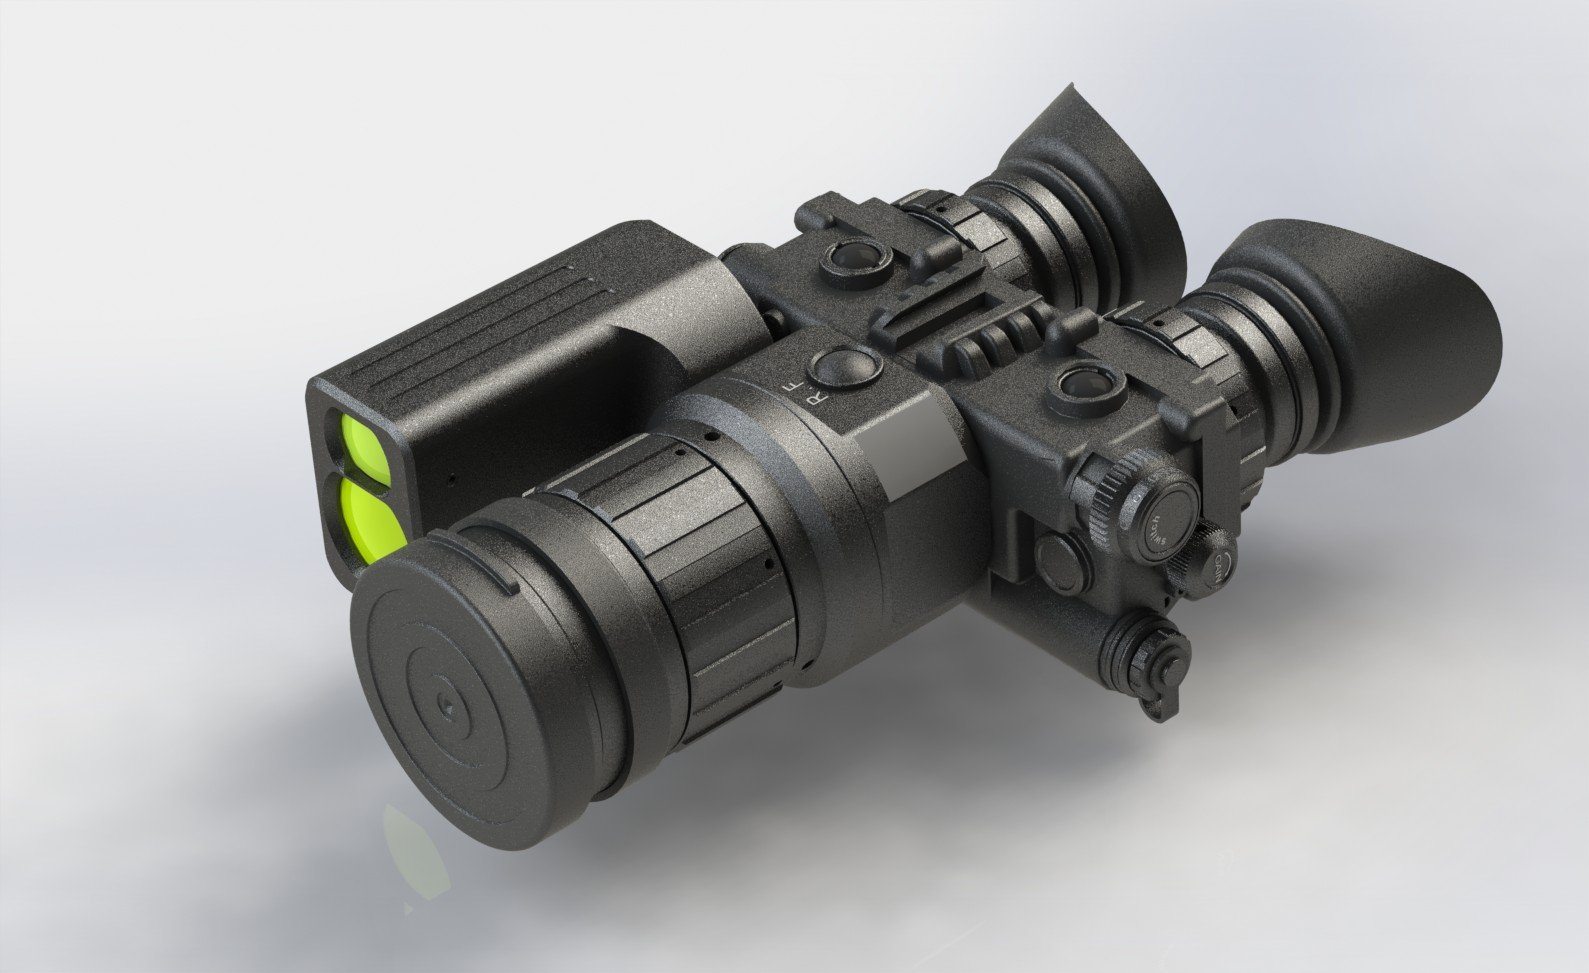 Luna Optics Thermal Binocular 3.5-14x with Laser